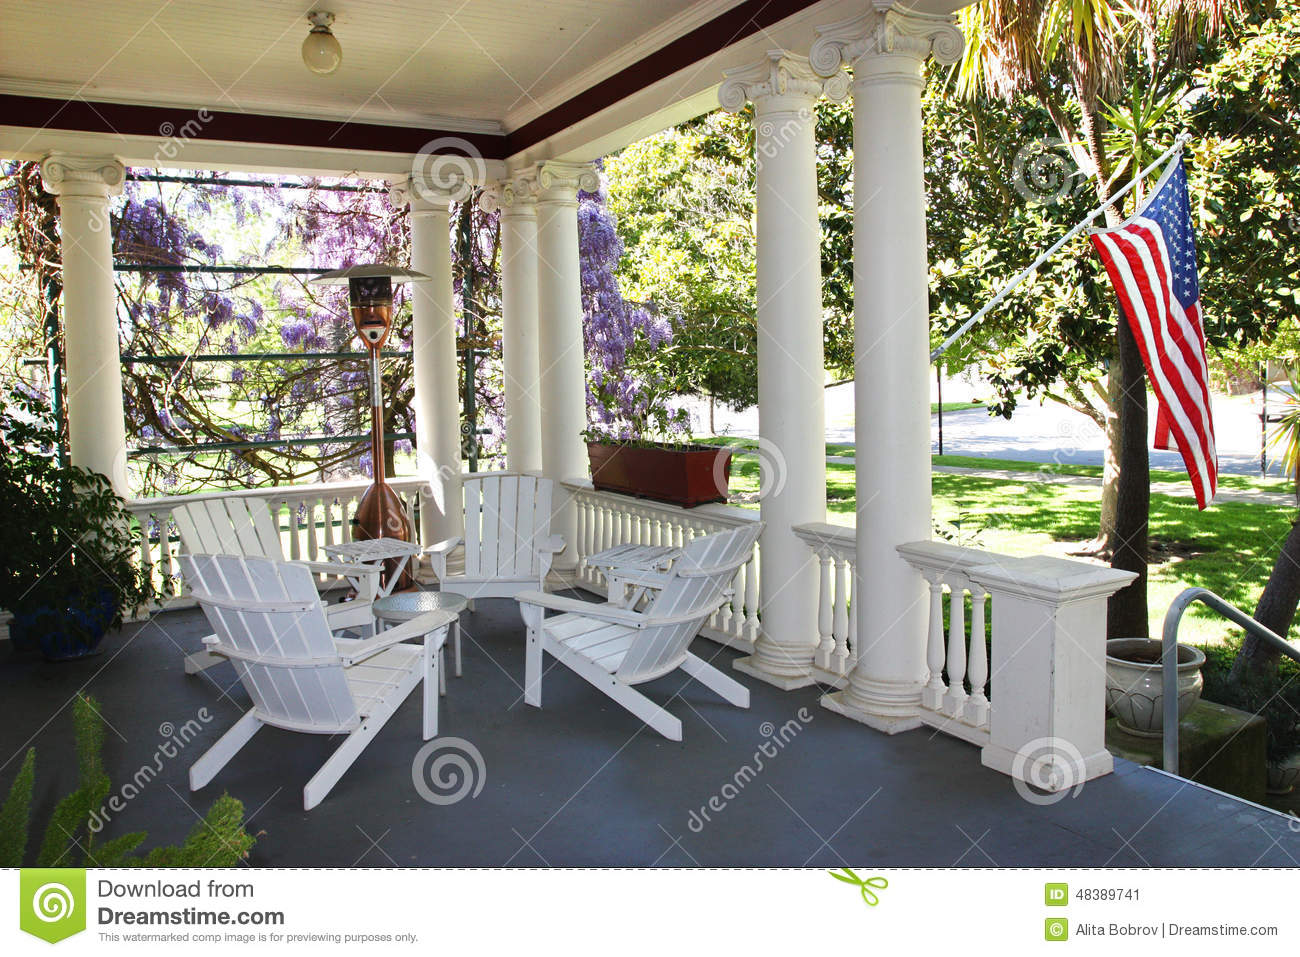 american flag chair graco duodiner high metropolis house porch stock image. image of home, american, blue - 48389741